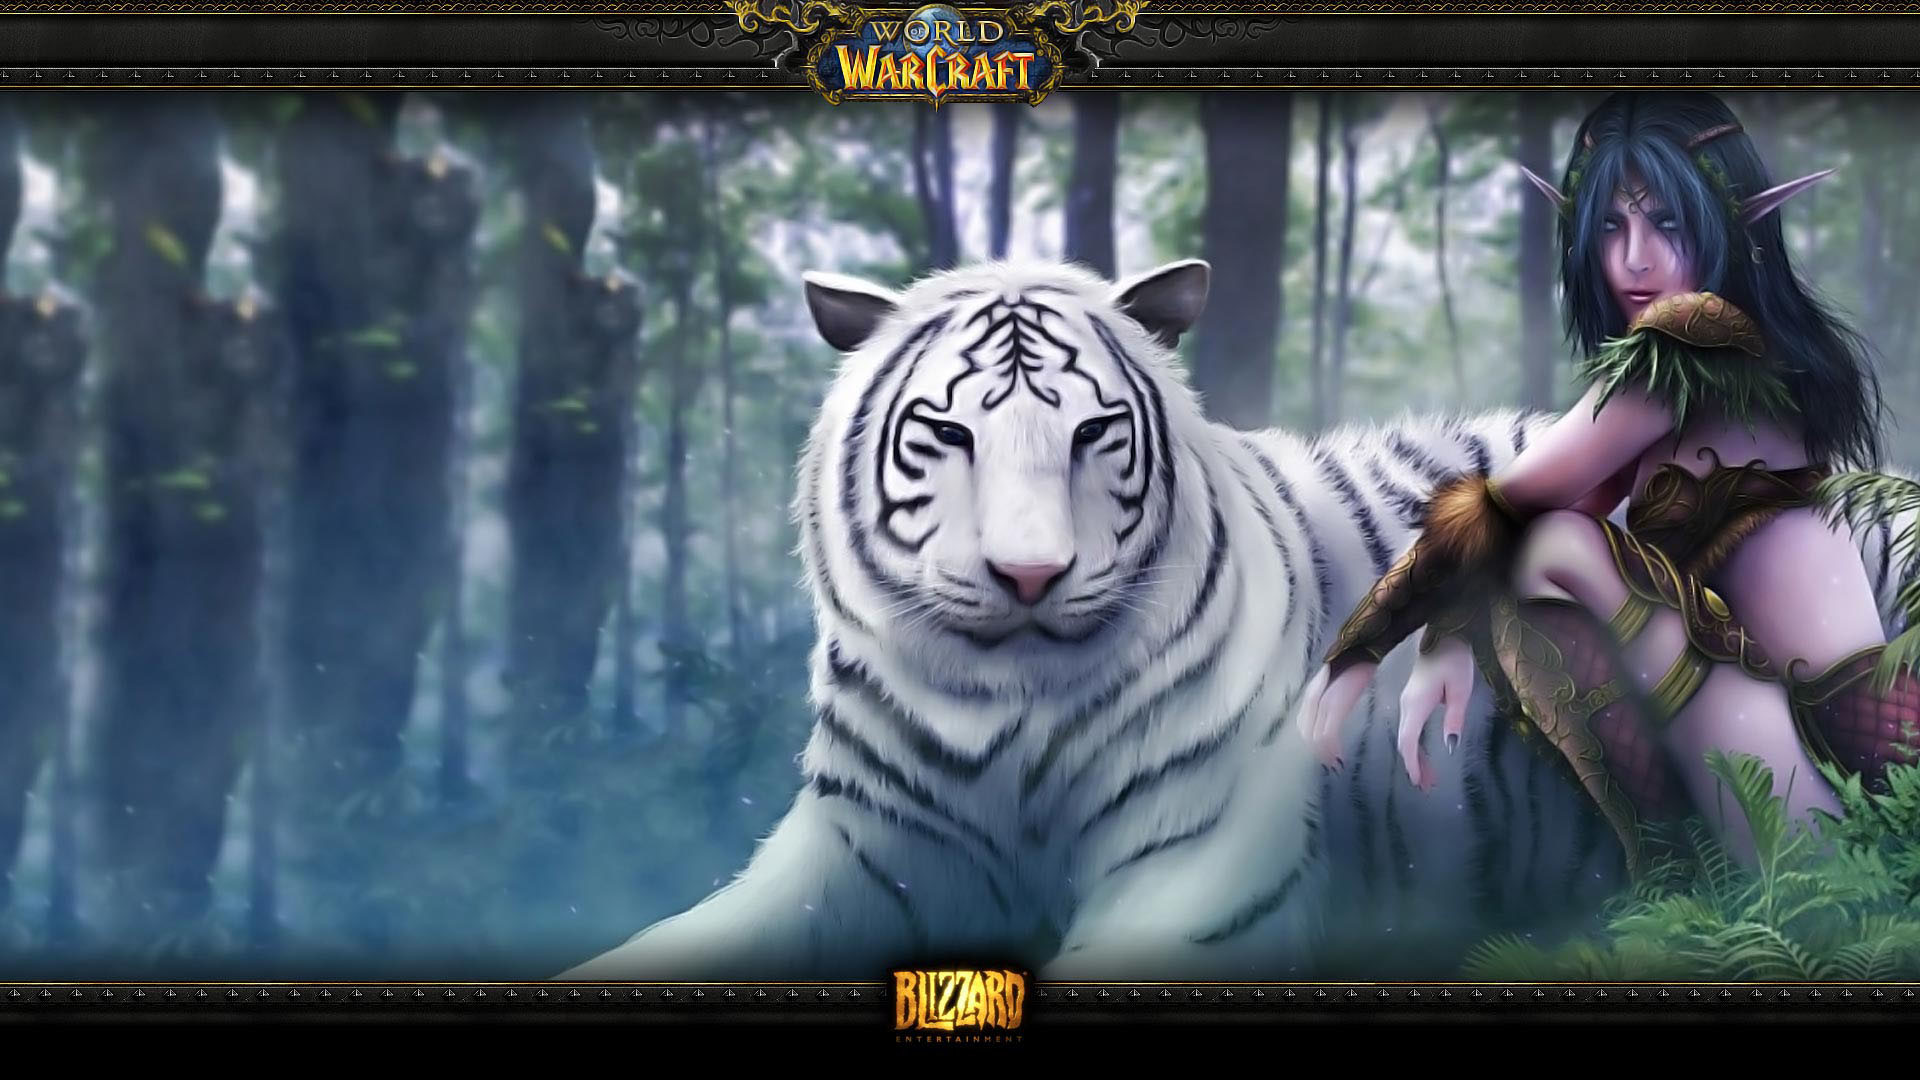 Wow beautiful artwork female night elf with her white tiger pet wallpaper.